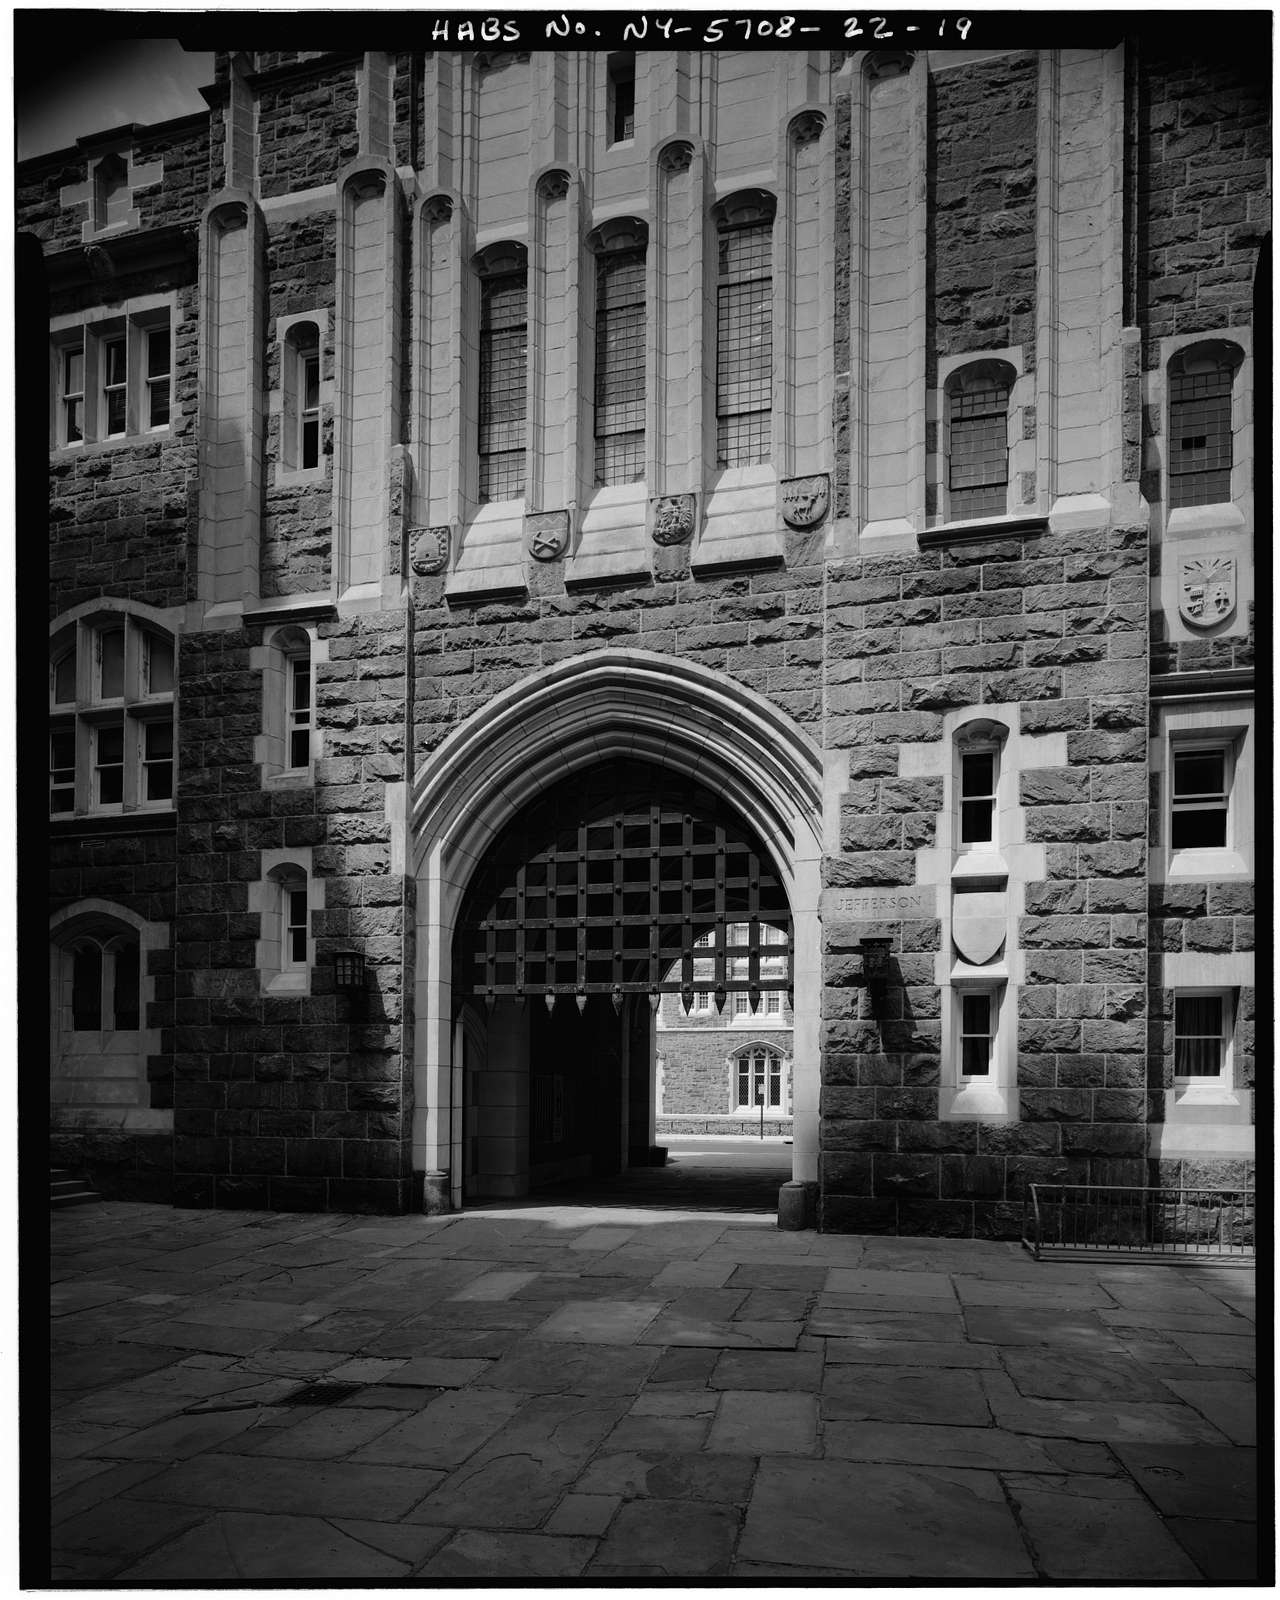 U. S. Military Academy, Administration Building, West Point, Orange County, NY